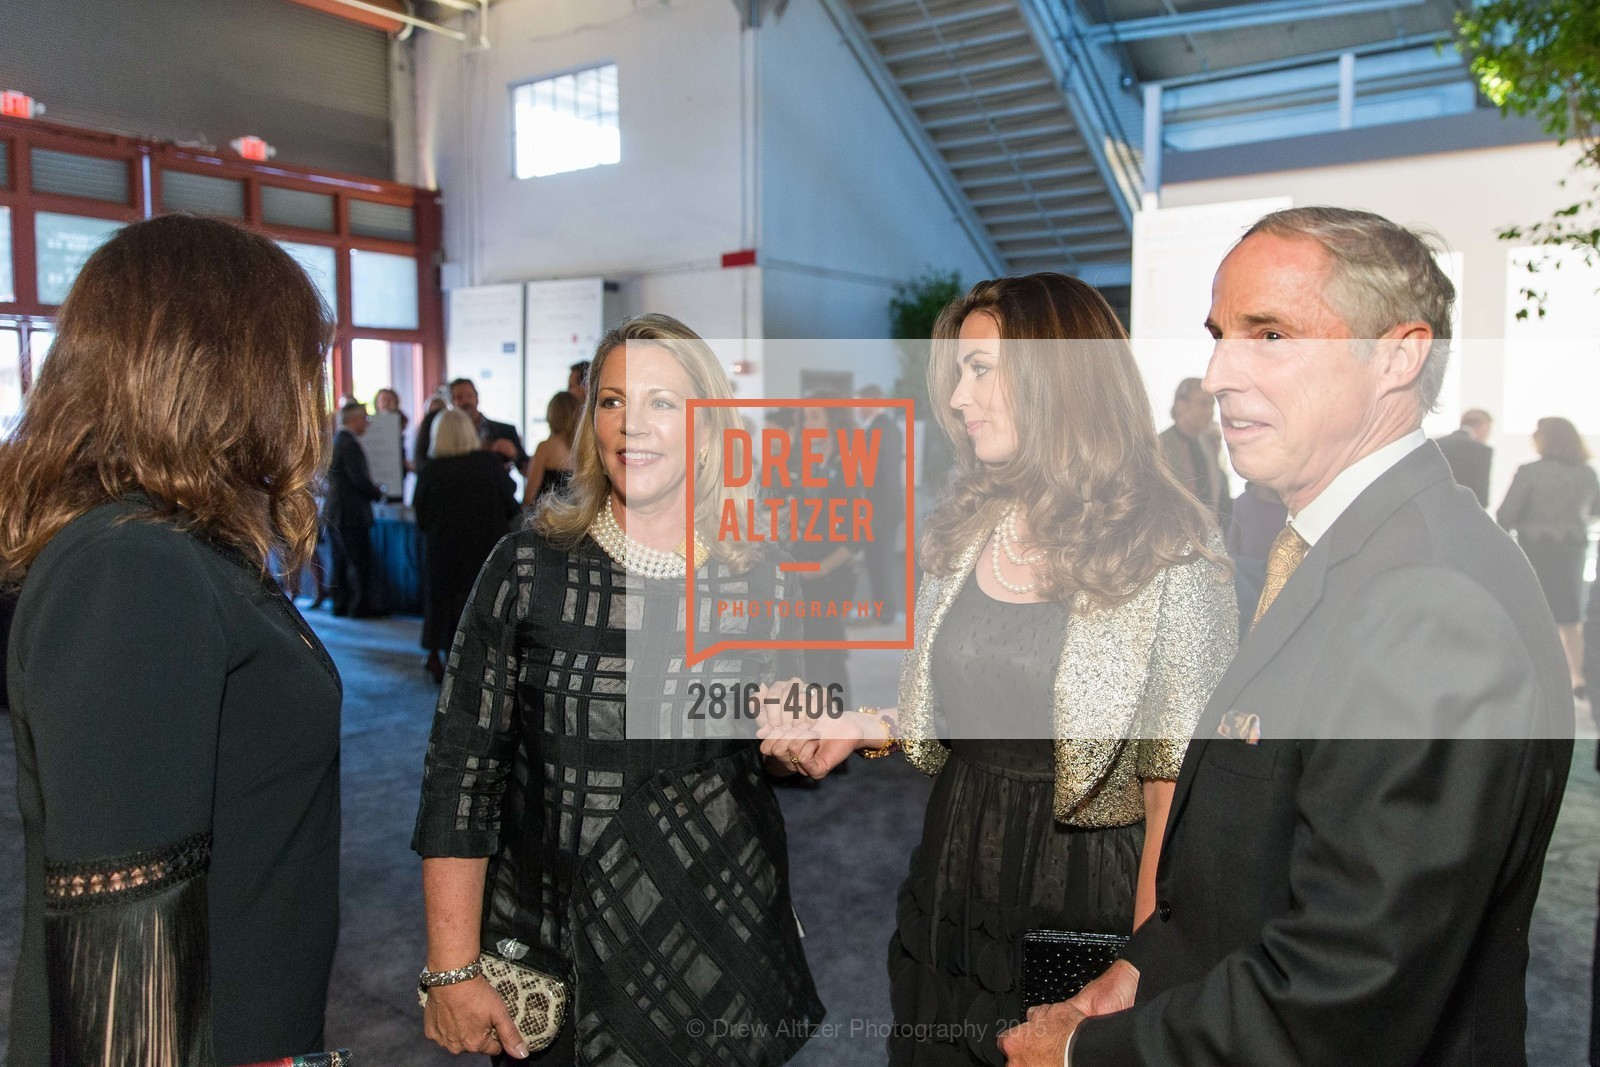 Suzanne Tucker, Hatley McMicking, Tim Marks, The San Francisco Fall Antiques Show, Festival Pavilion, Fort Mason, October 21st, 2015,Drew Altizer, Drew Altizer Photography, full-service agency, private events, San Francisco photographer, photographer california